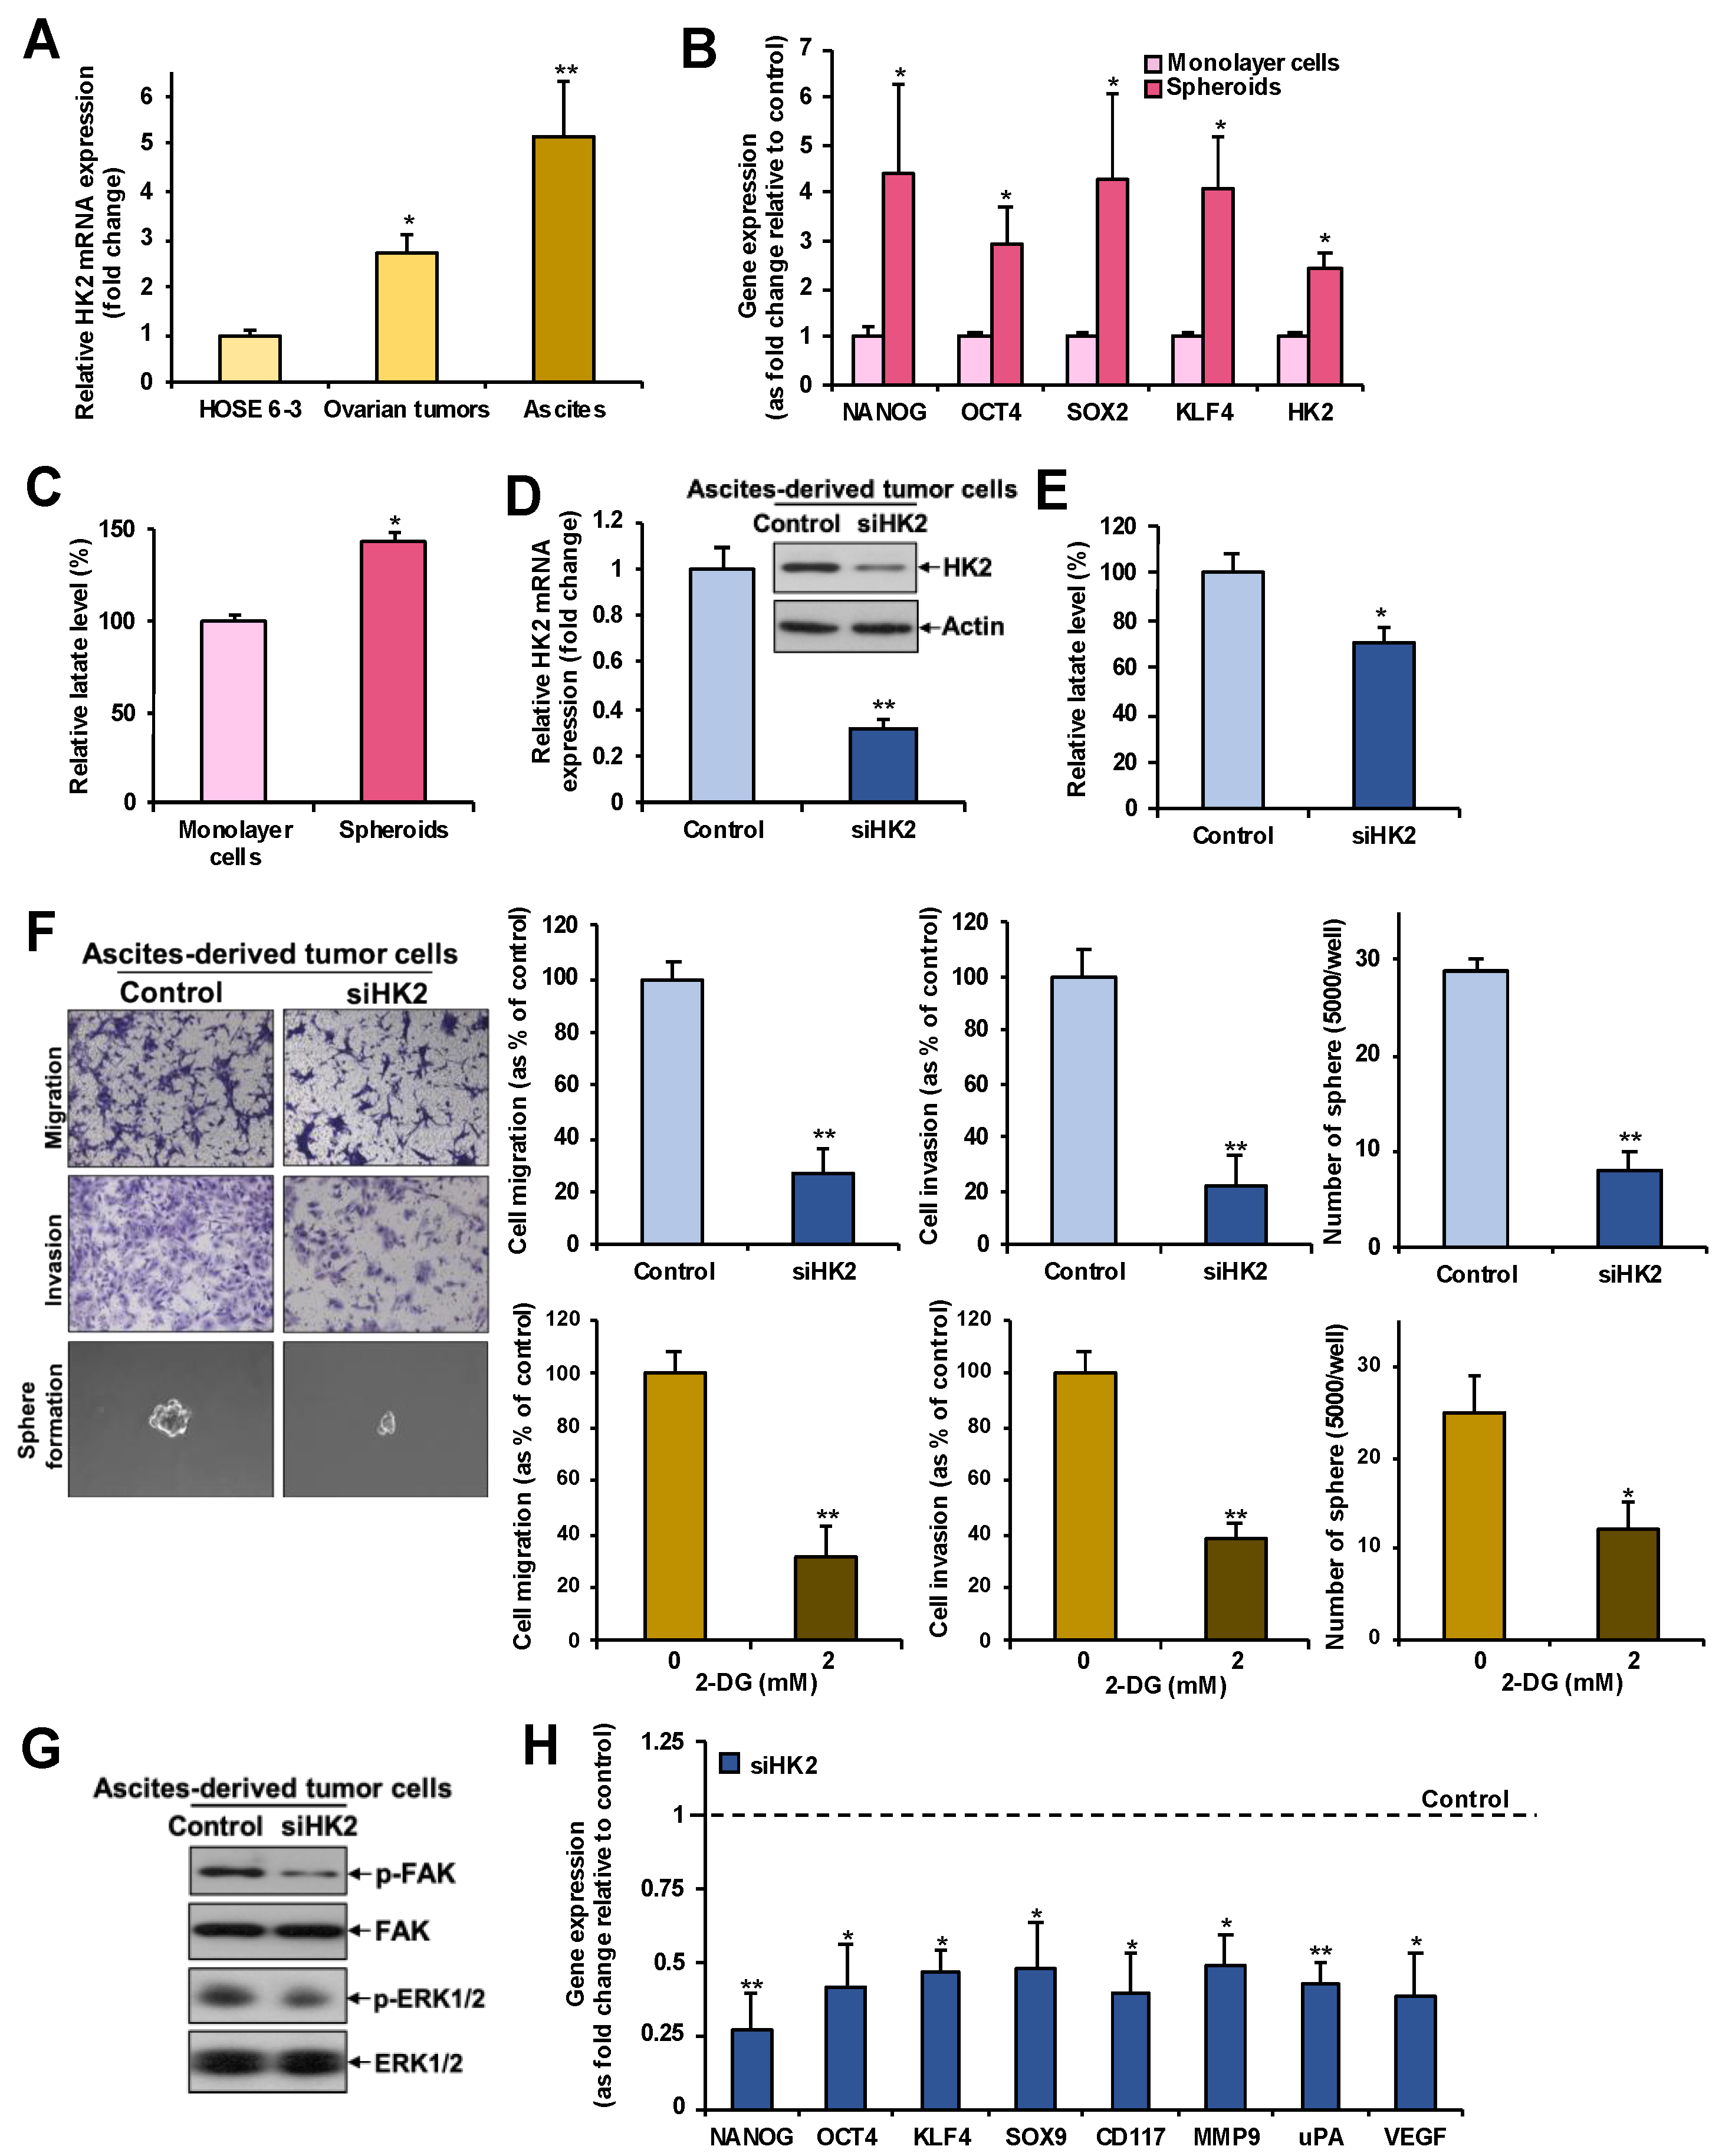 Cancers | Free Full-Text | Hexokinase 2 Regulates Ovarian Cancer